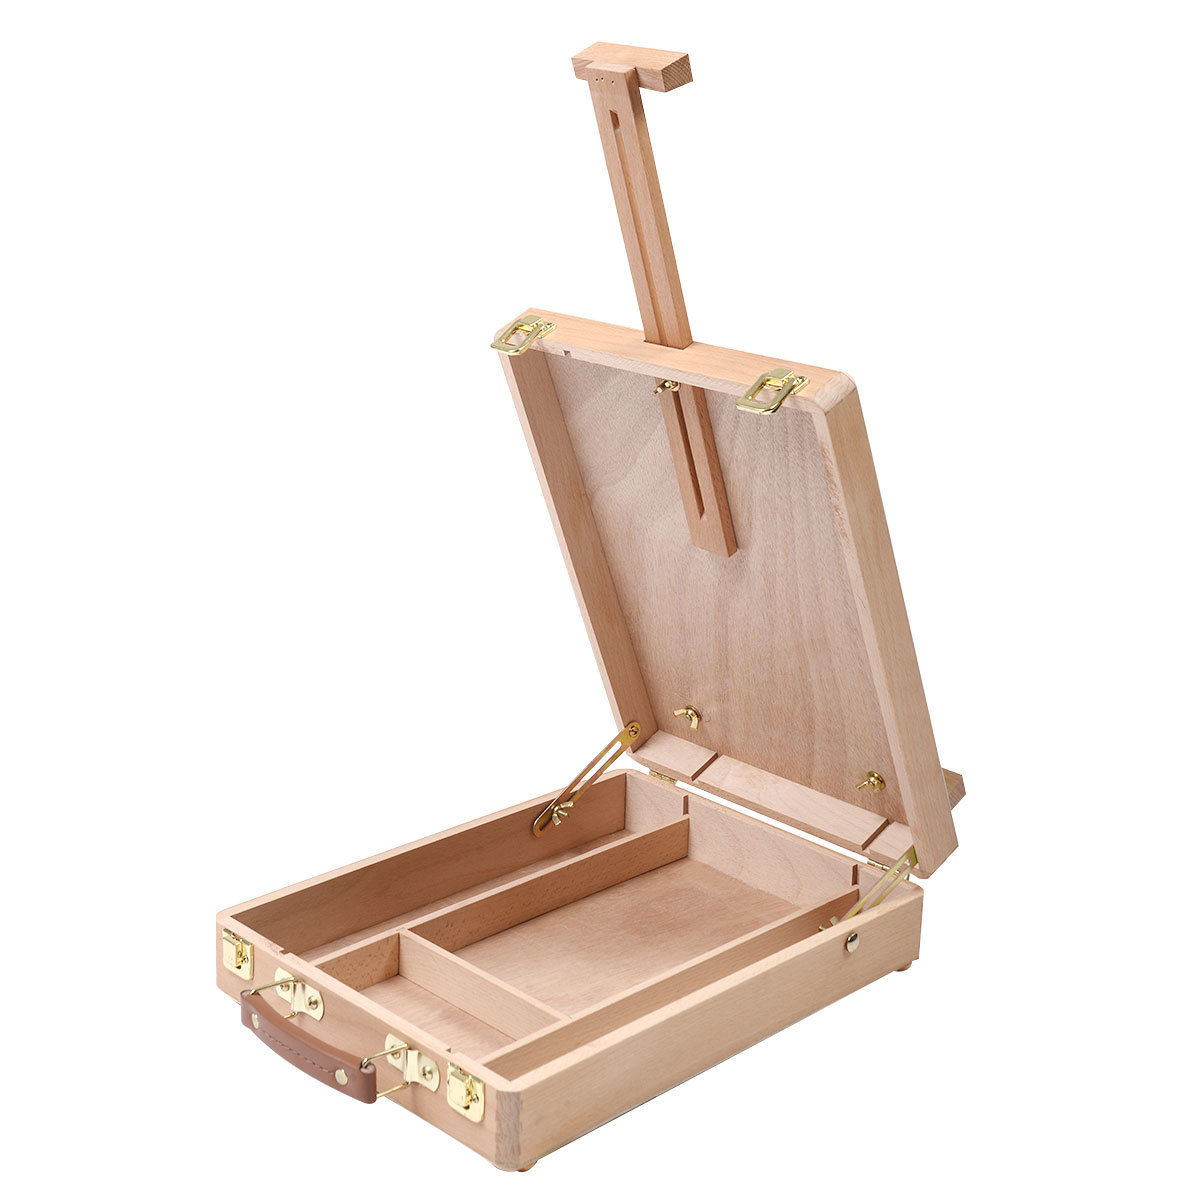 Easel Artist Craft with Integrated Wooden Box Art Drawing Painting Table BoxEasel Artist Craft with Integrated Wooden Box Art Drawing Painting Table Box